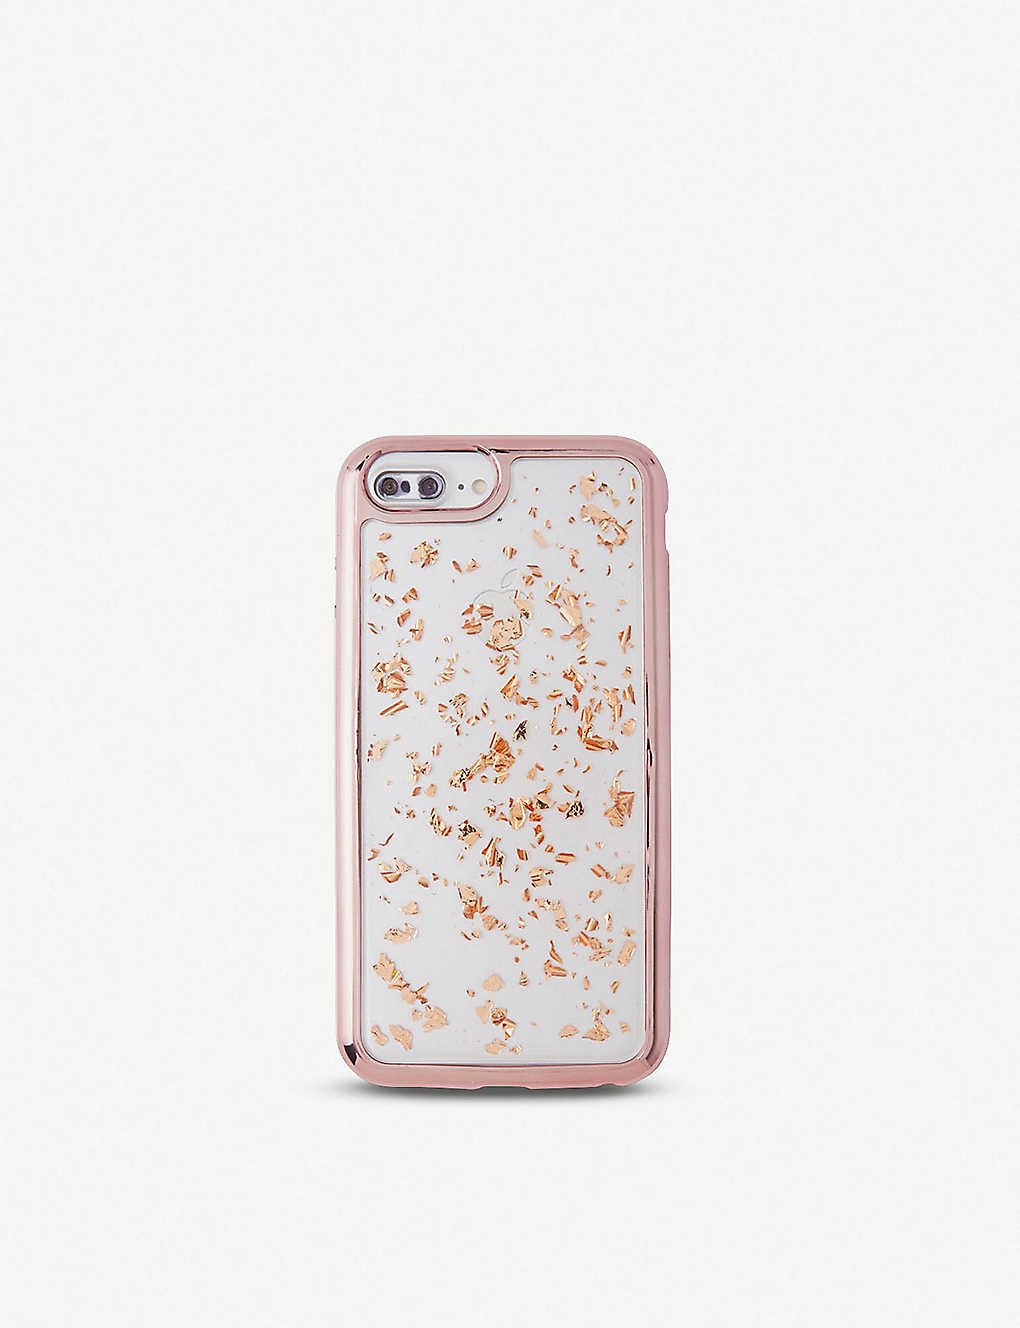 on sale 24ab5 a4446 The Superior iPhone 6,7,8 Plus cover